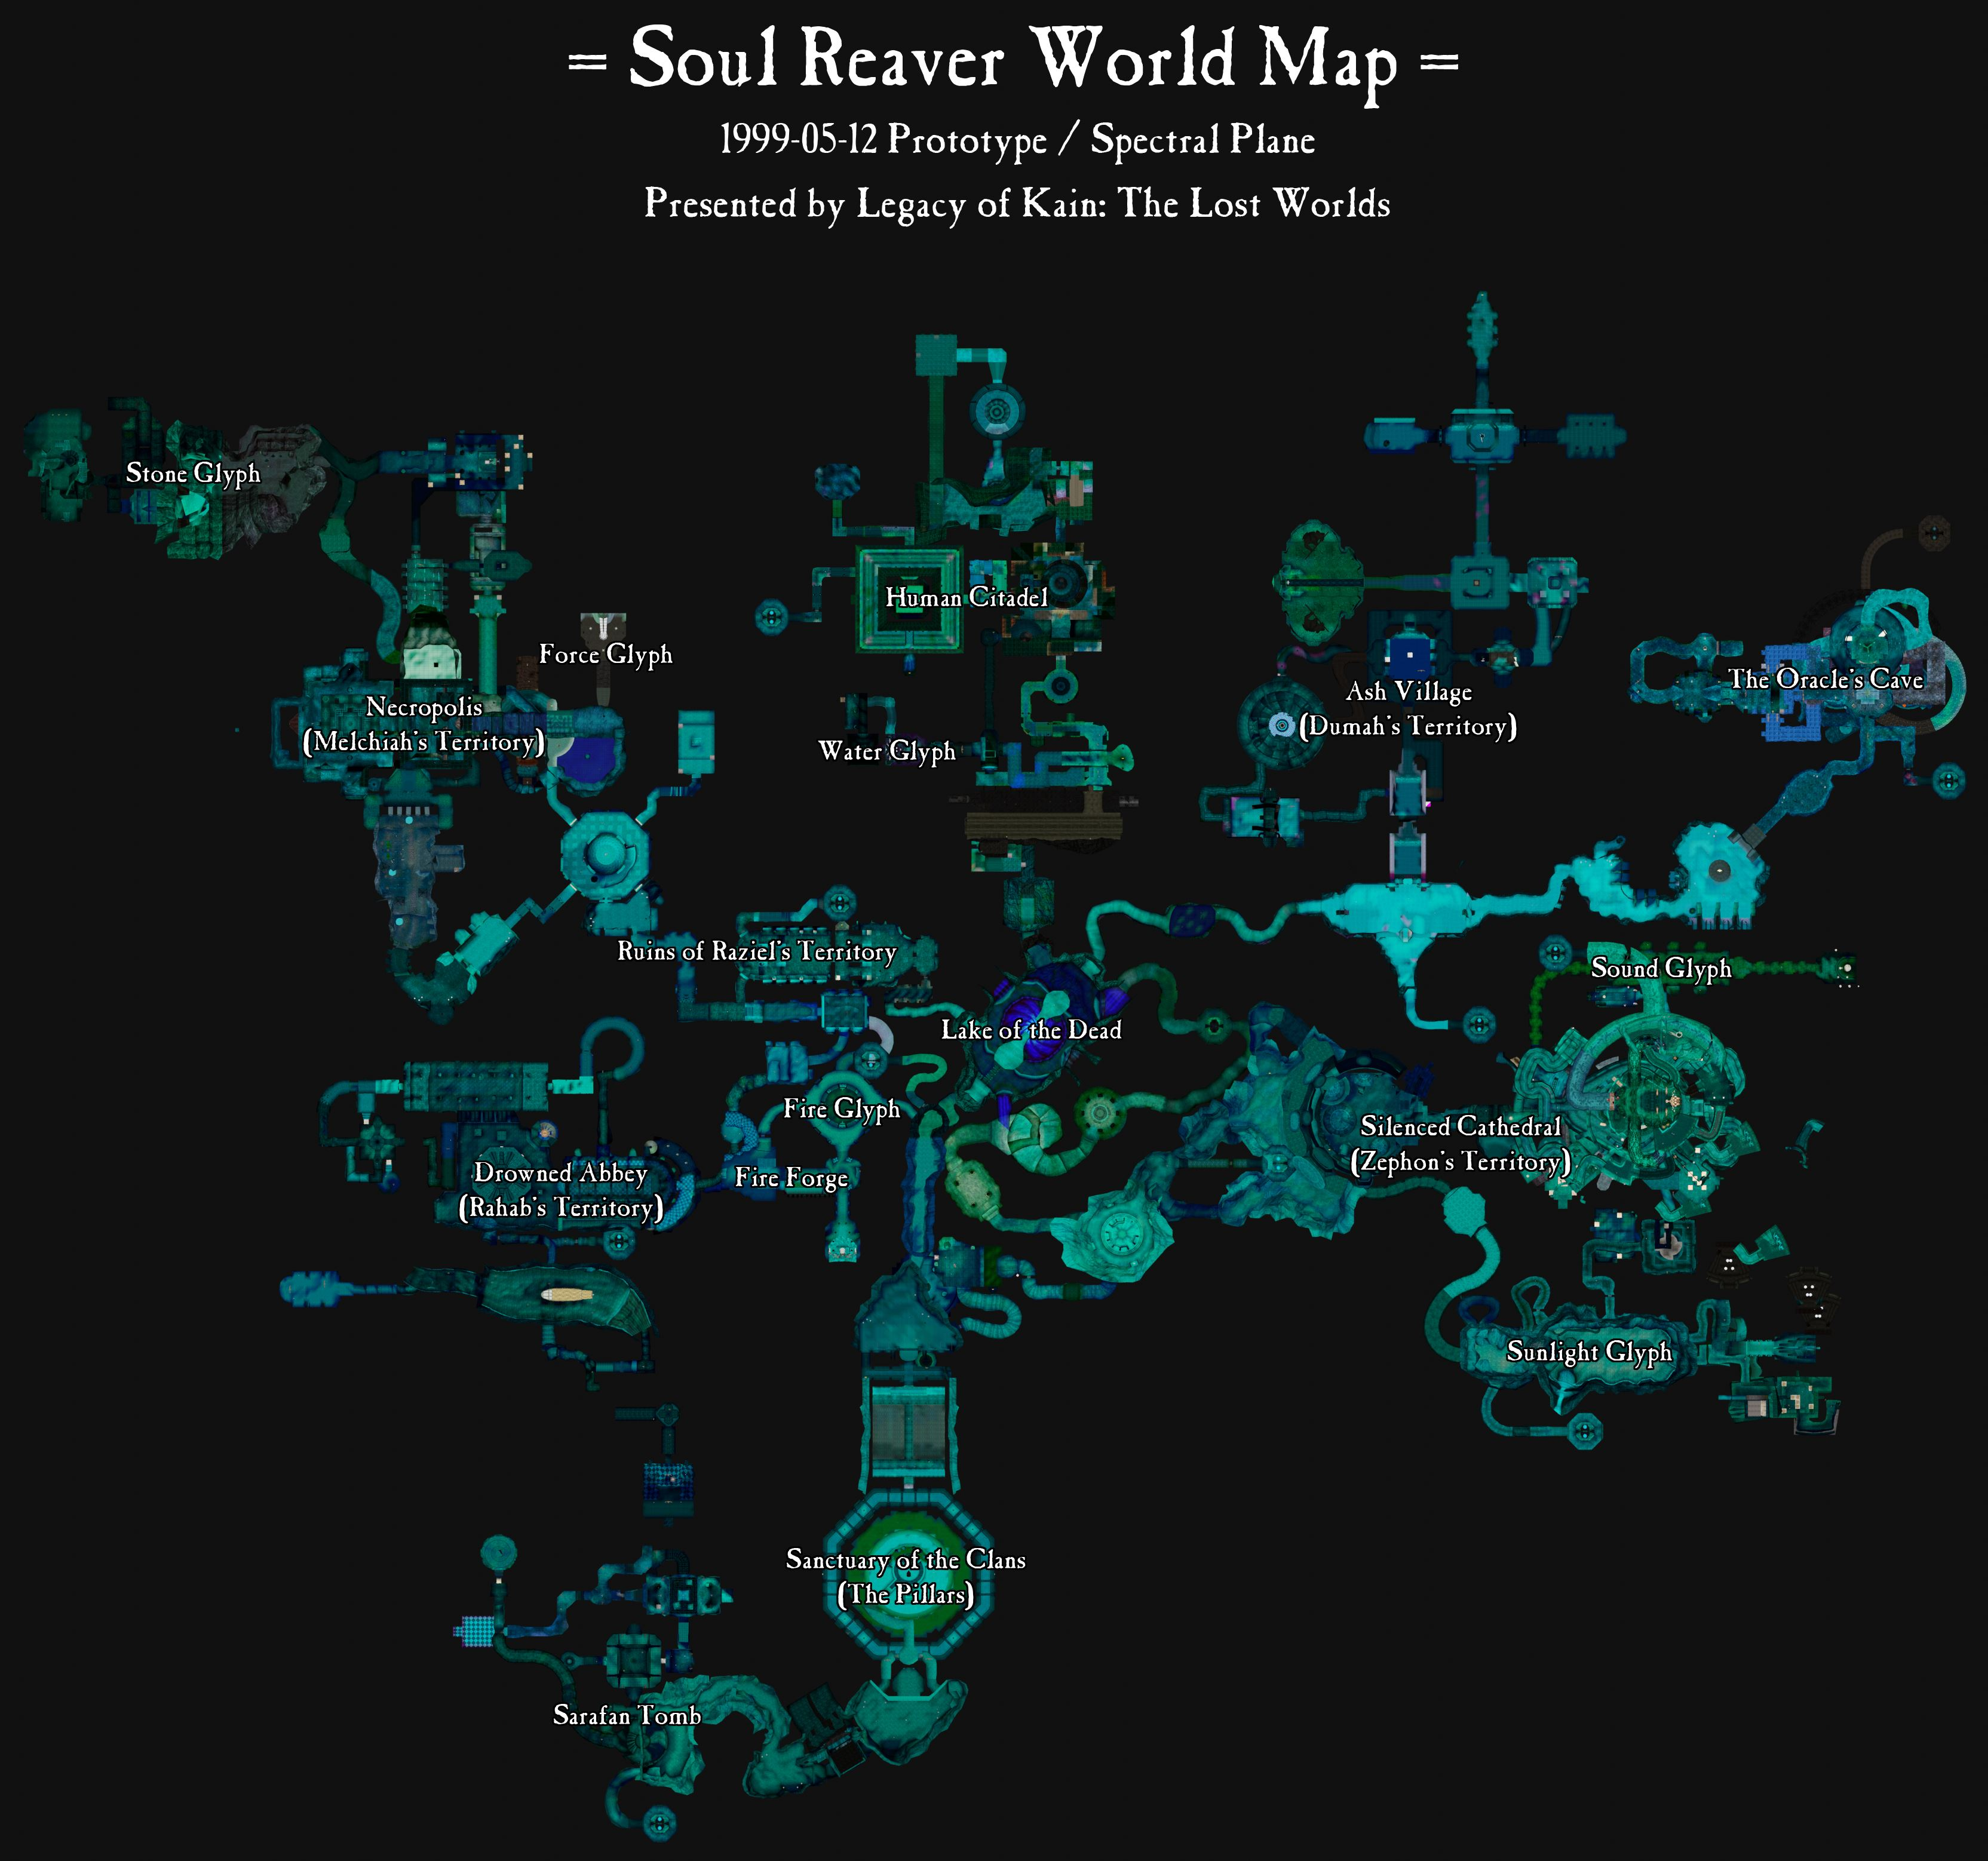 World Map Evolution-01-Maps-Soul Reaver World Map-1999-05-12-Spectral-Annotated.jpg